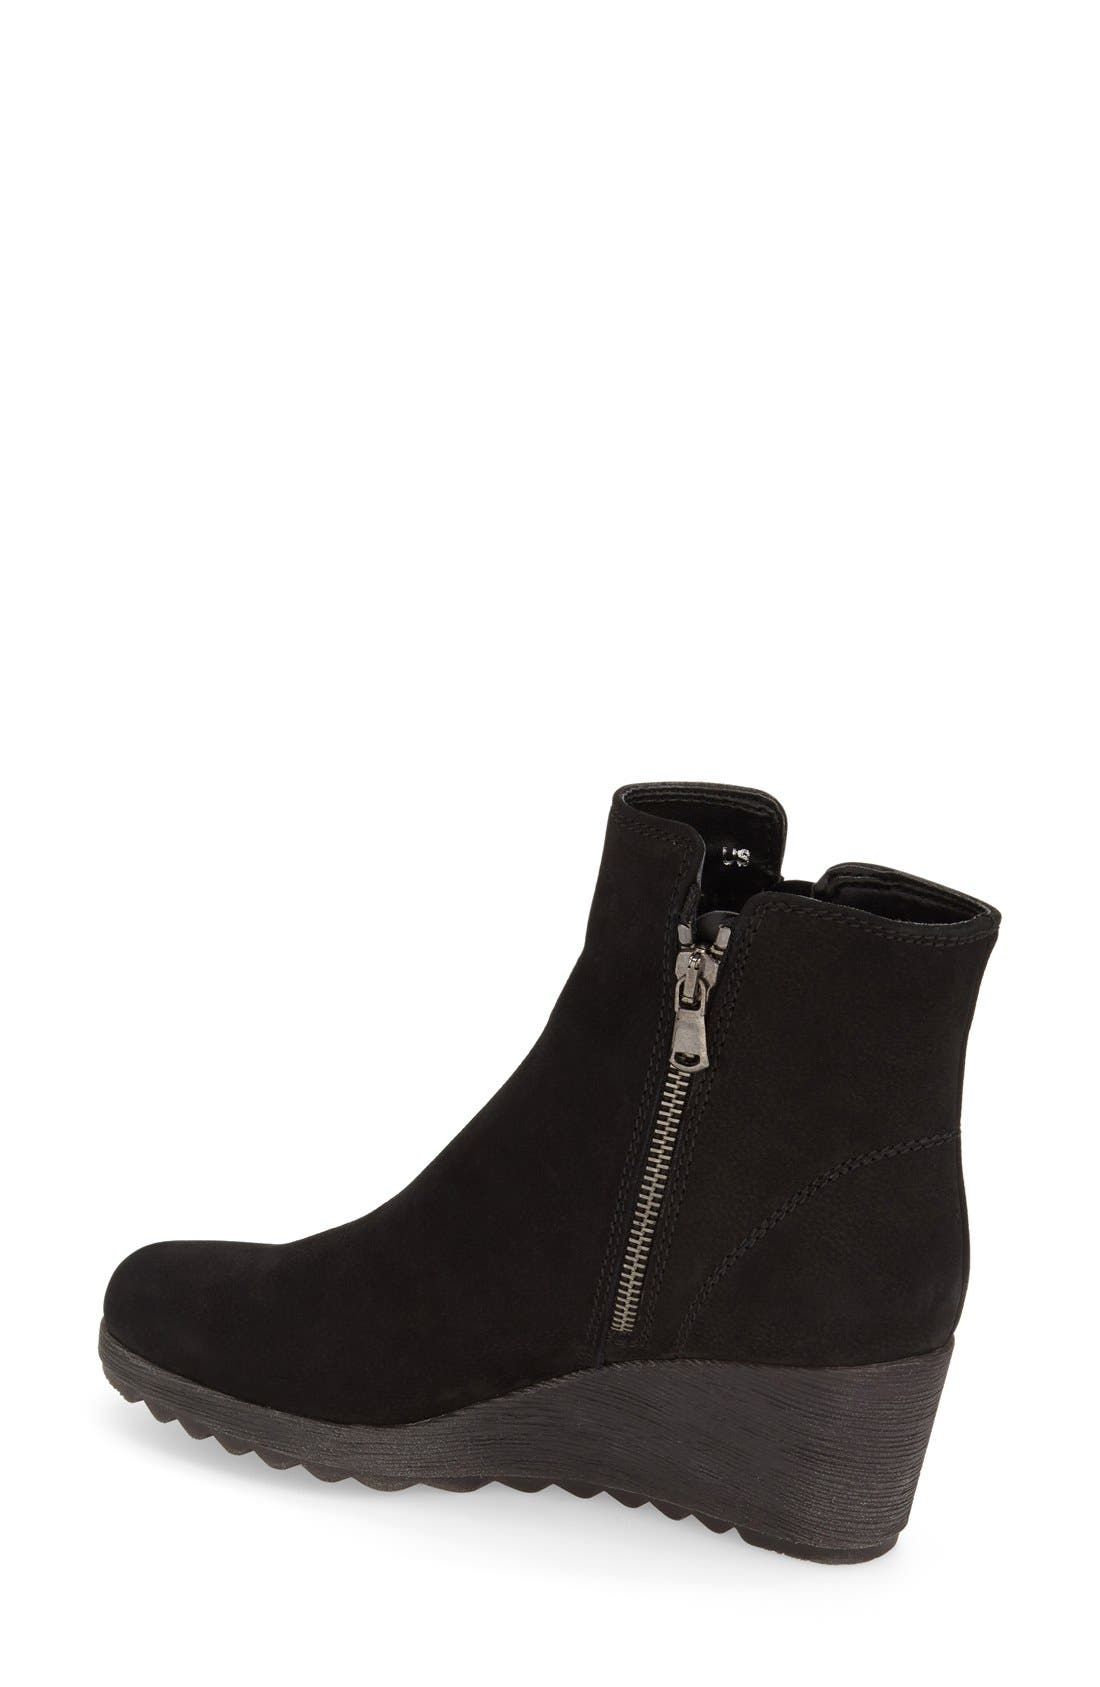 THE FLEXX,                             'Pic a Winner' Wedge Bootie,                             Alternate thumbnail 2, color,                             013